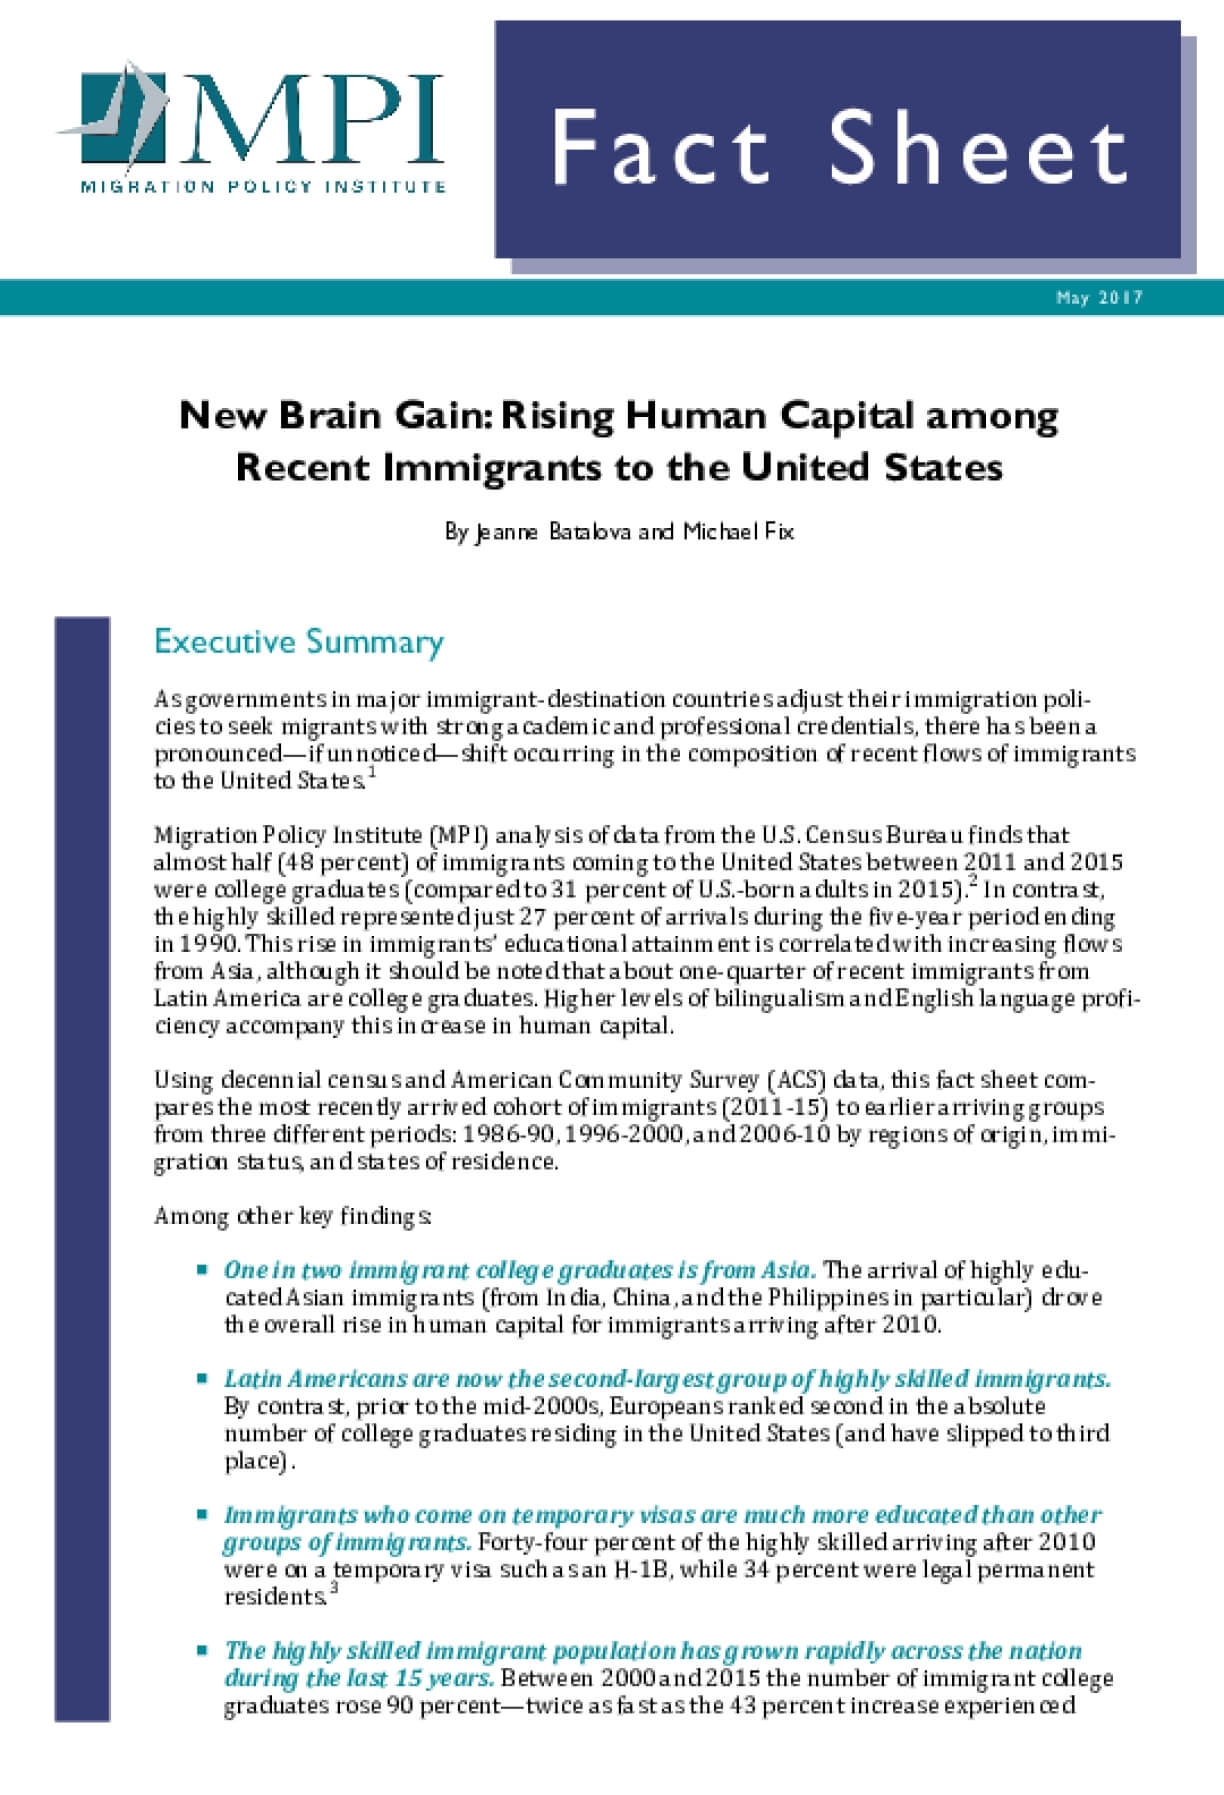 New Brain Gain: Rising Human Capital among Recent Immigrants to the United States